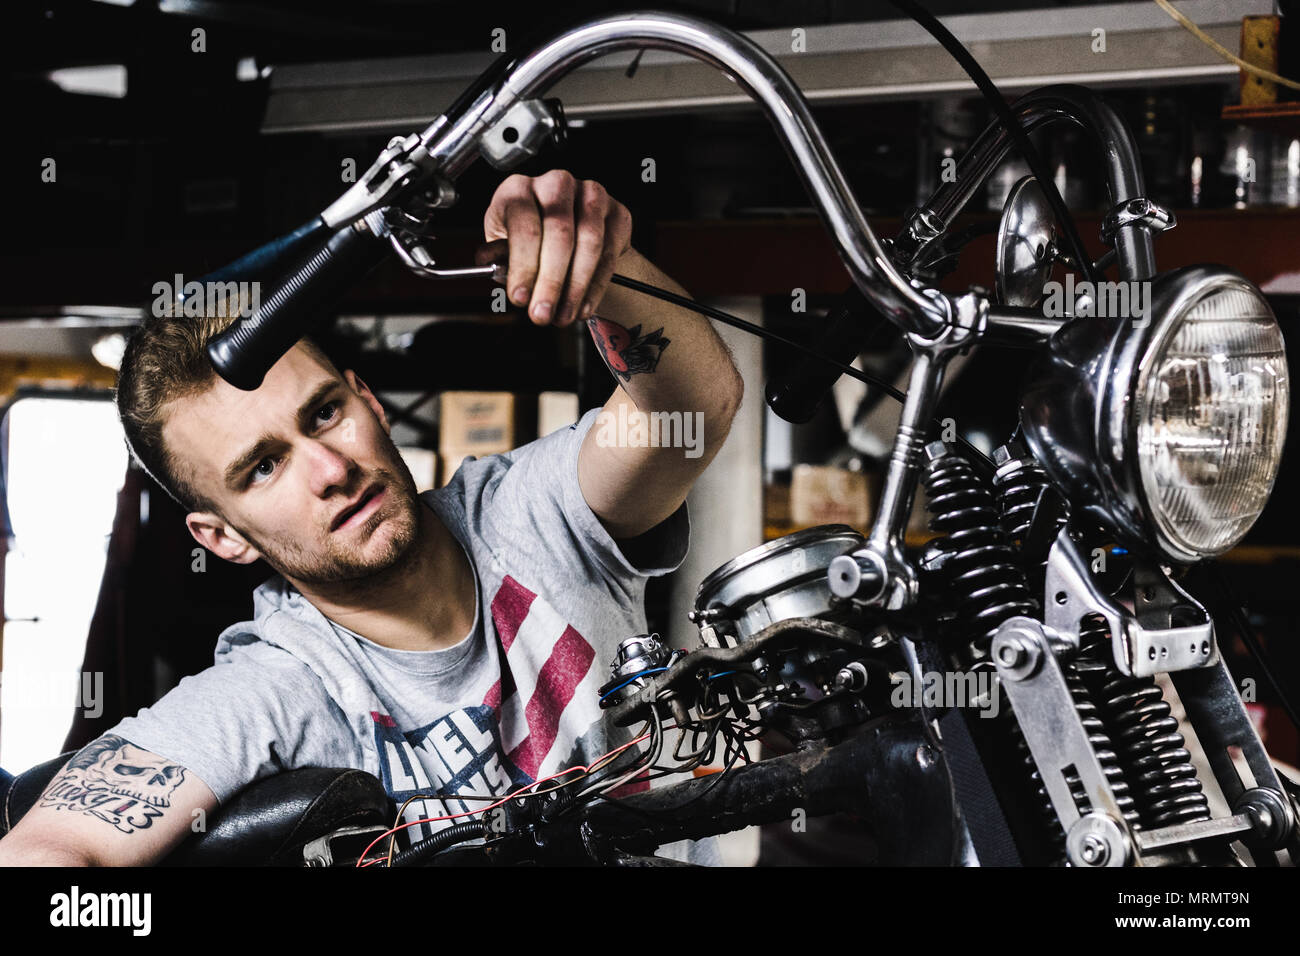 A mechanic working on his motorcycle - Stock Image